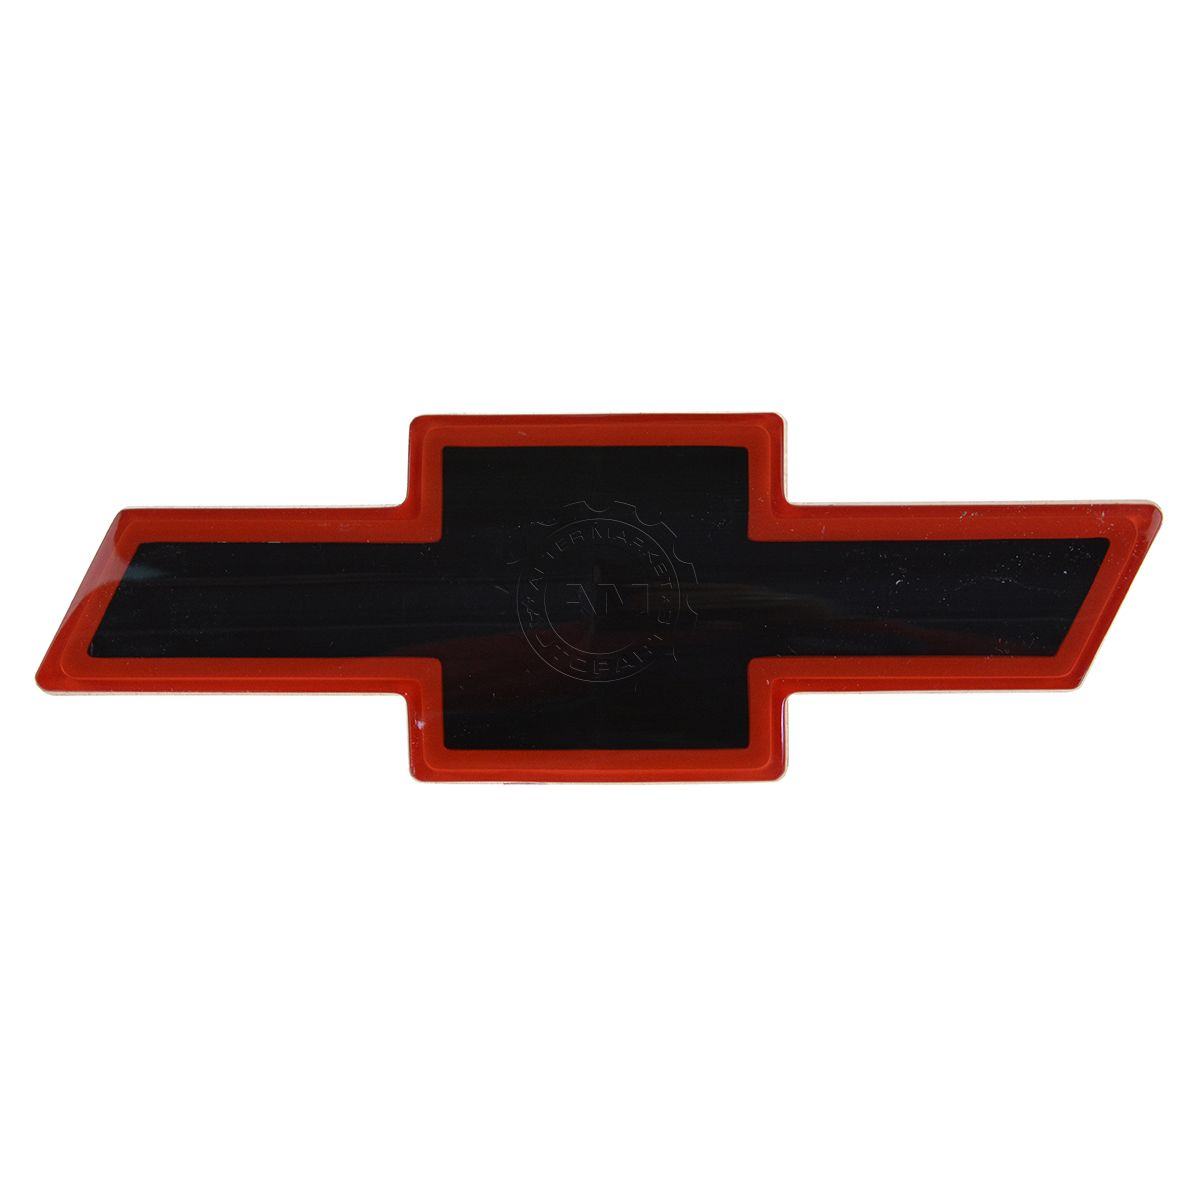 Details about OEM 12543000 Grille Mounted Black & Red Bowtie Emblem for  Chevy